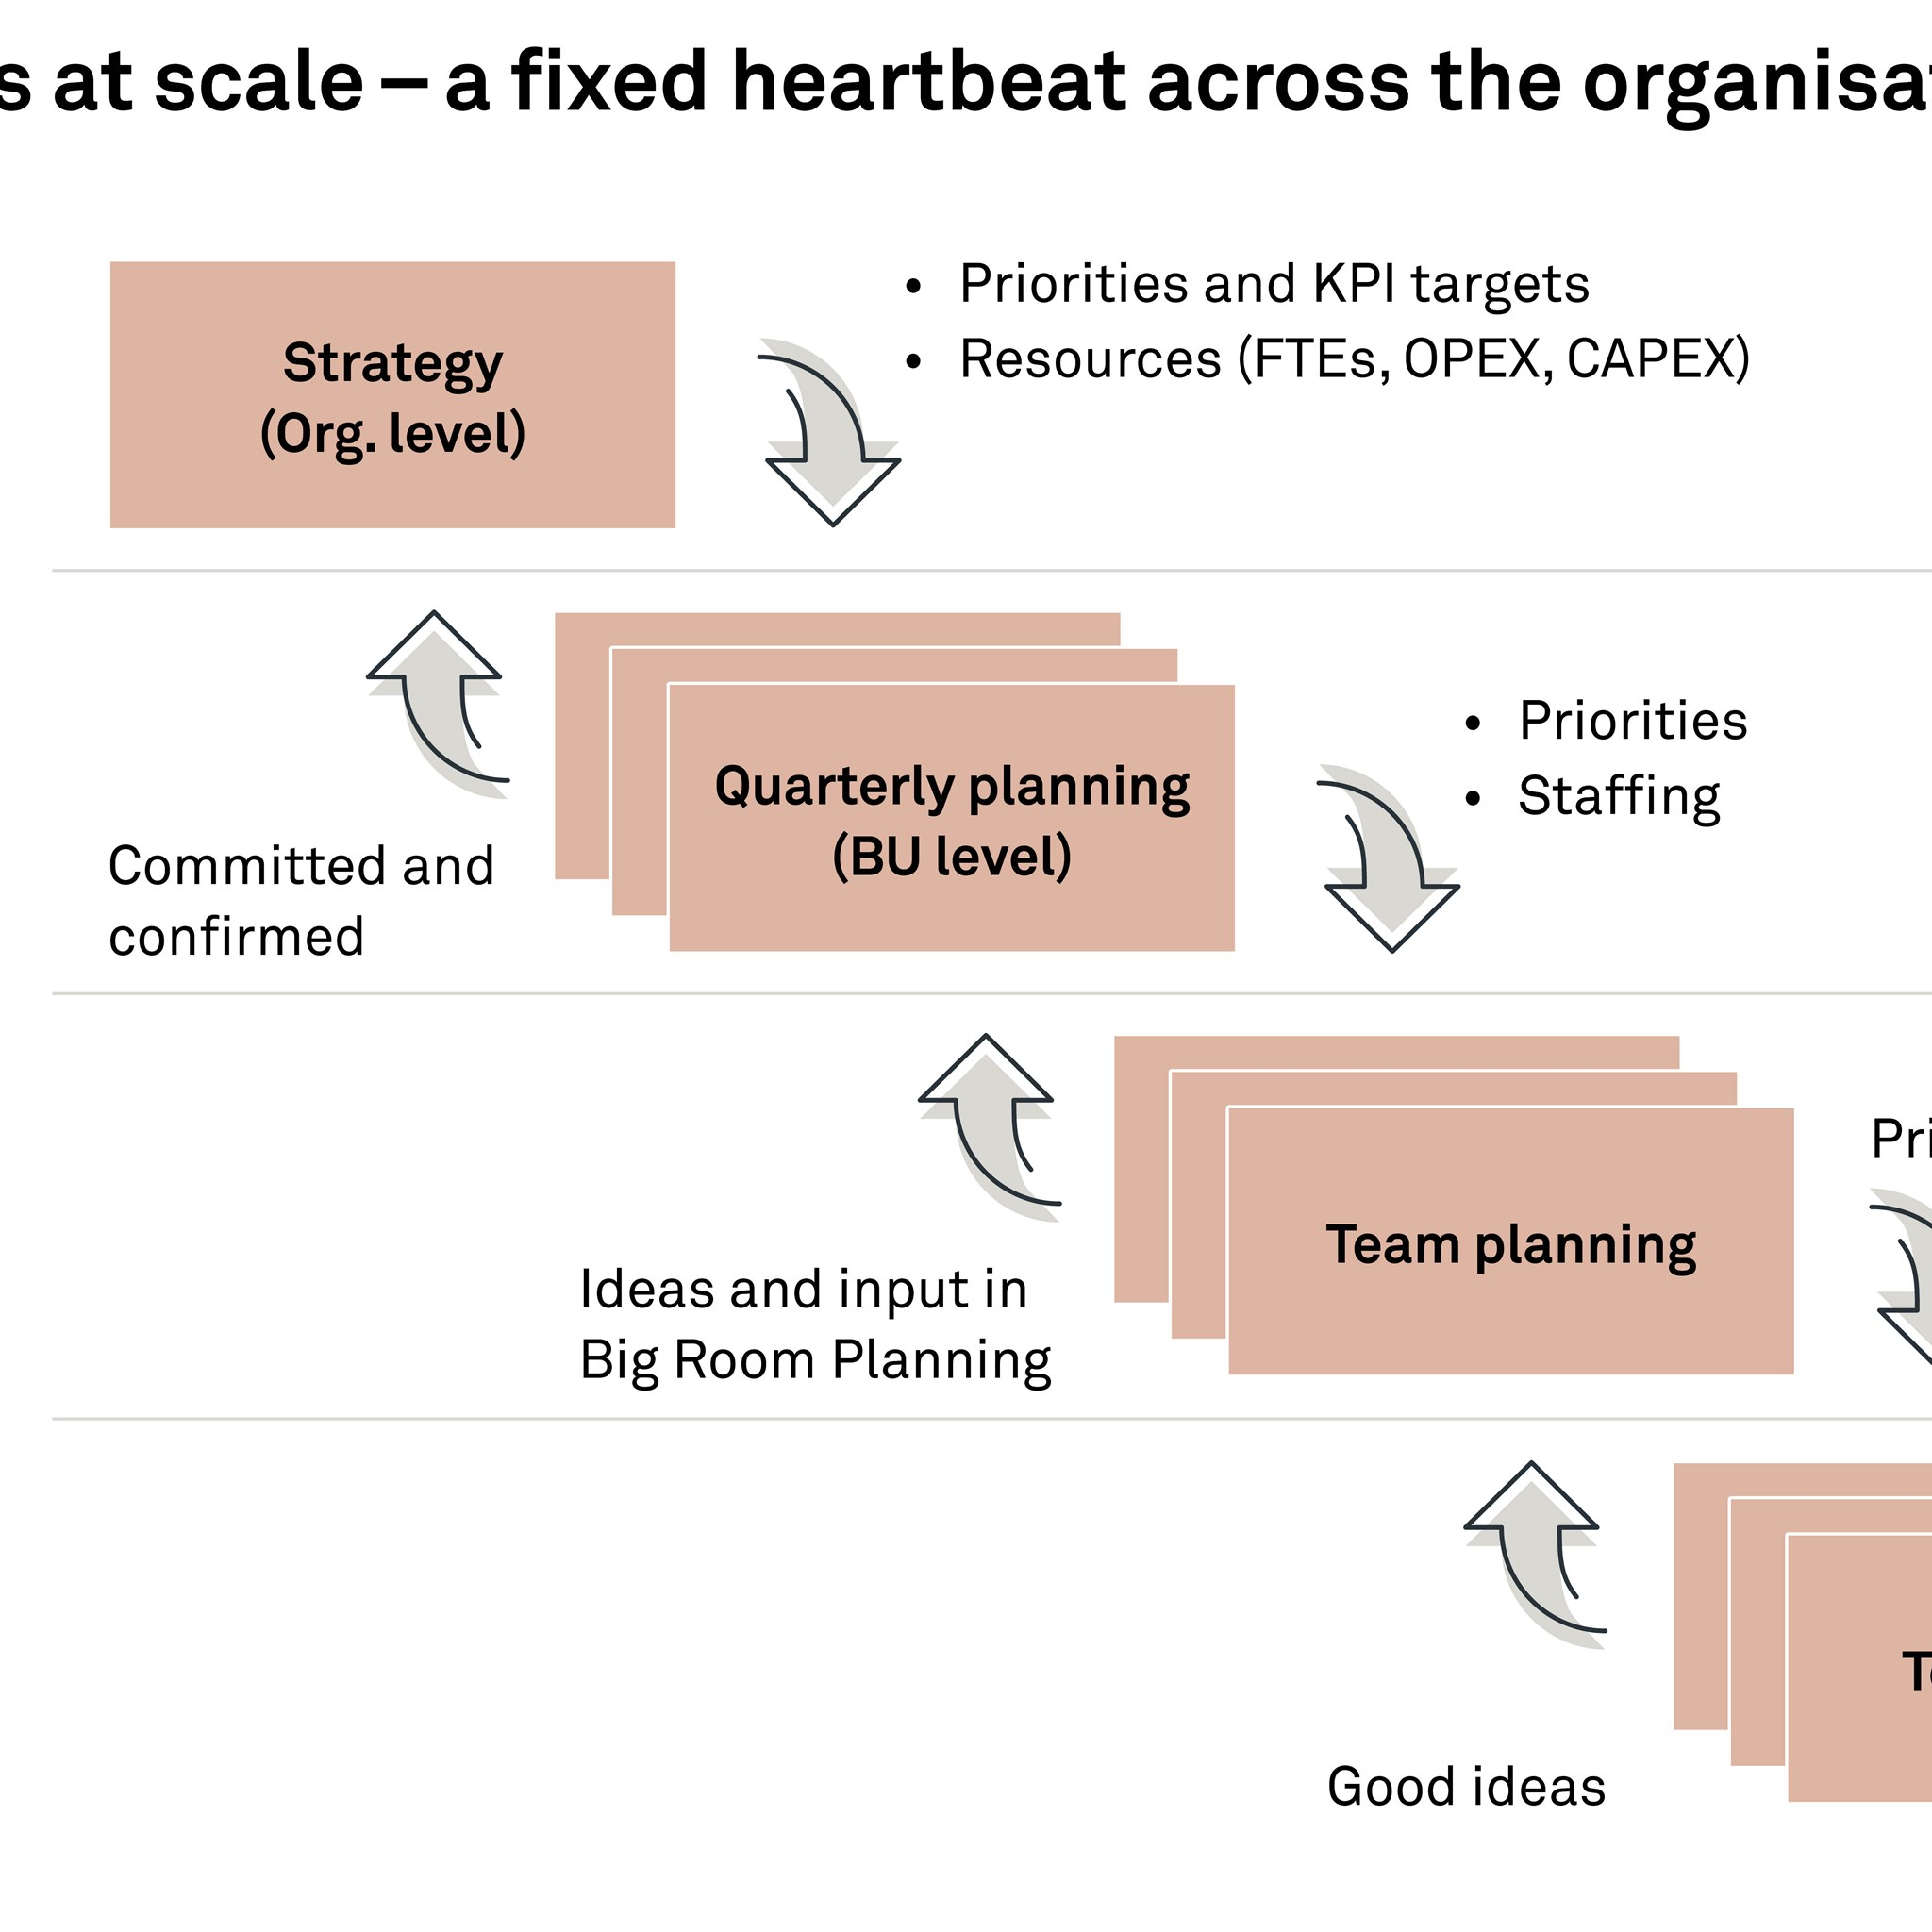 Agile processes at scale – a fixed heartbeat across the organisation